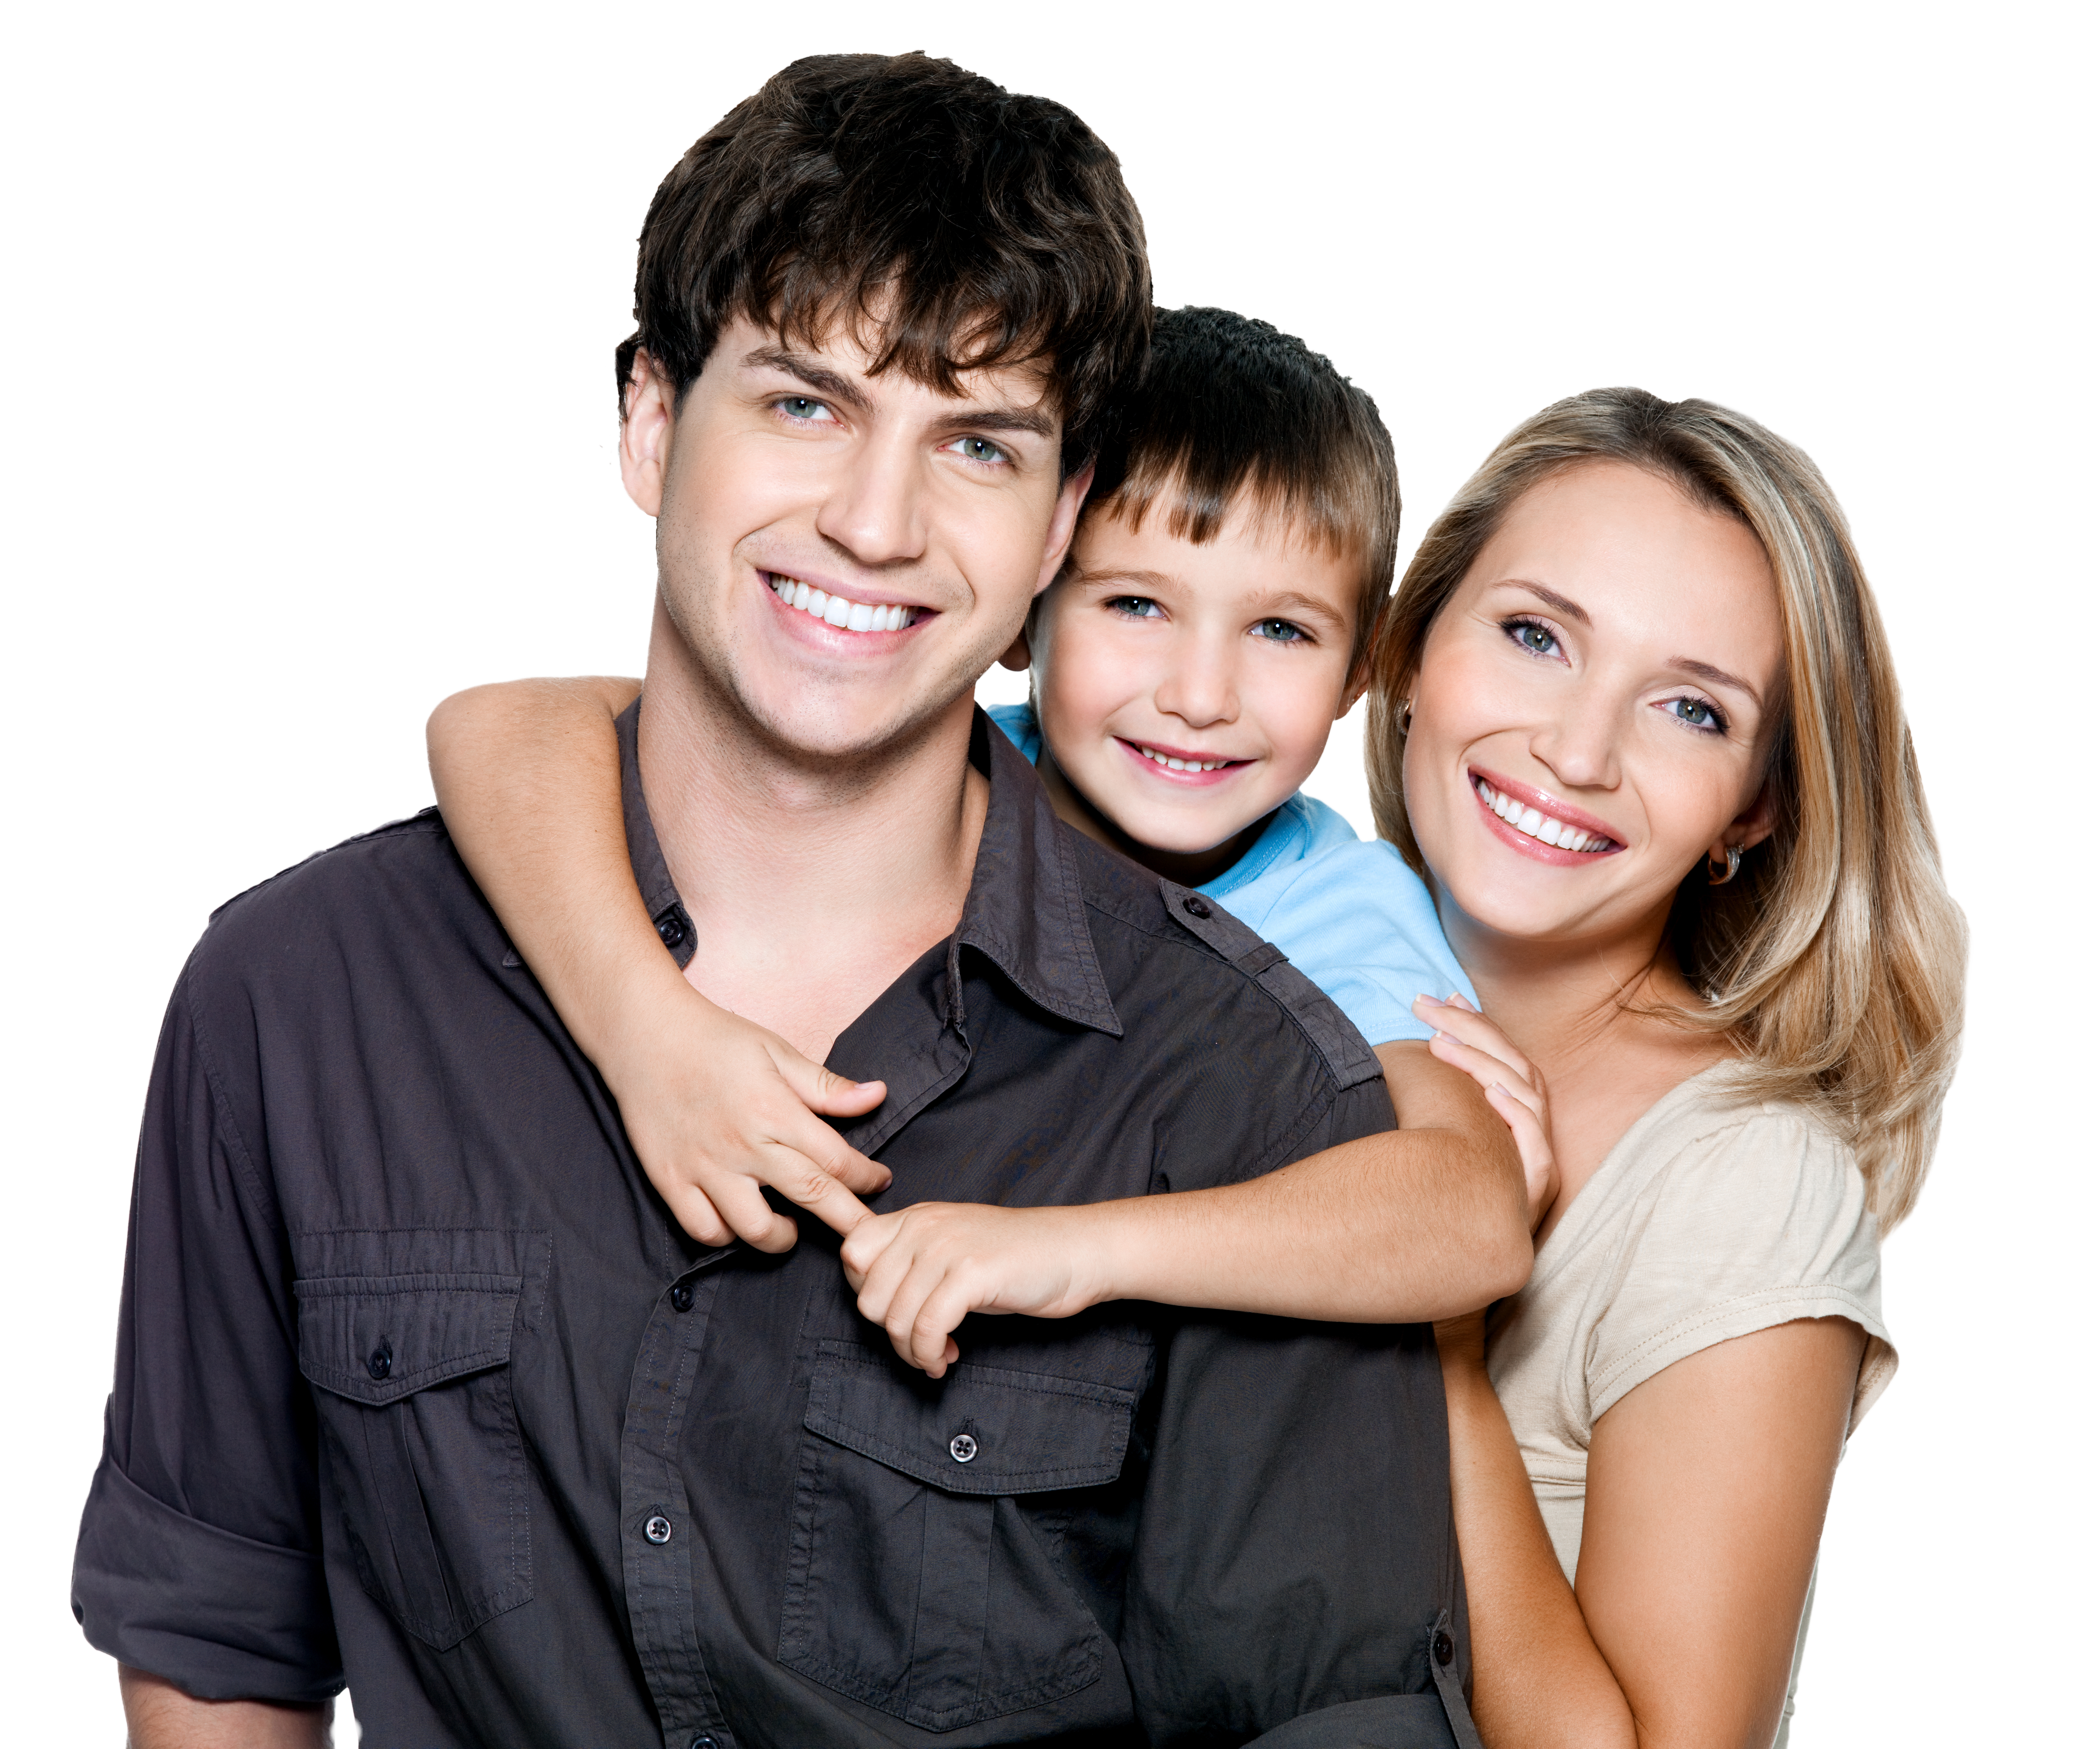 bigstock-Happy-Young-Family-With-Pretty-9828821 copy